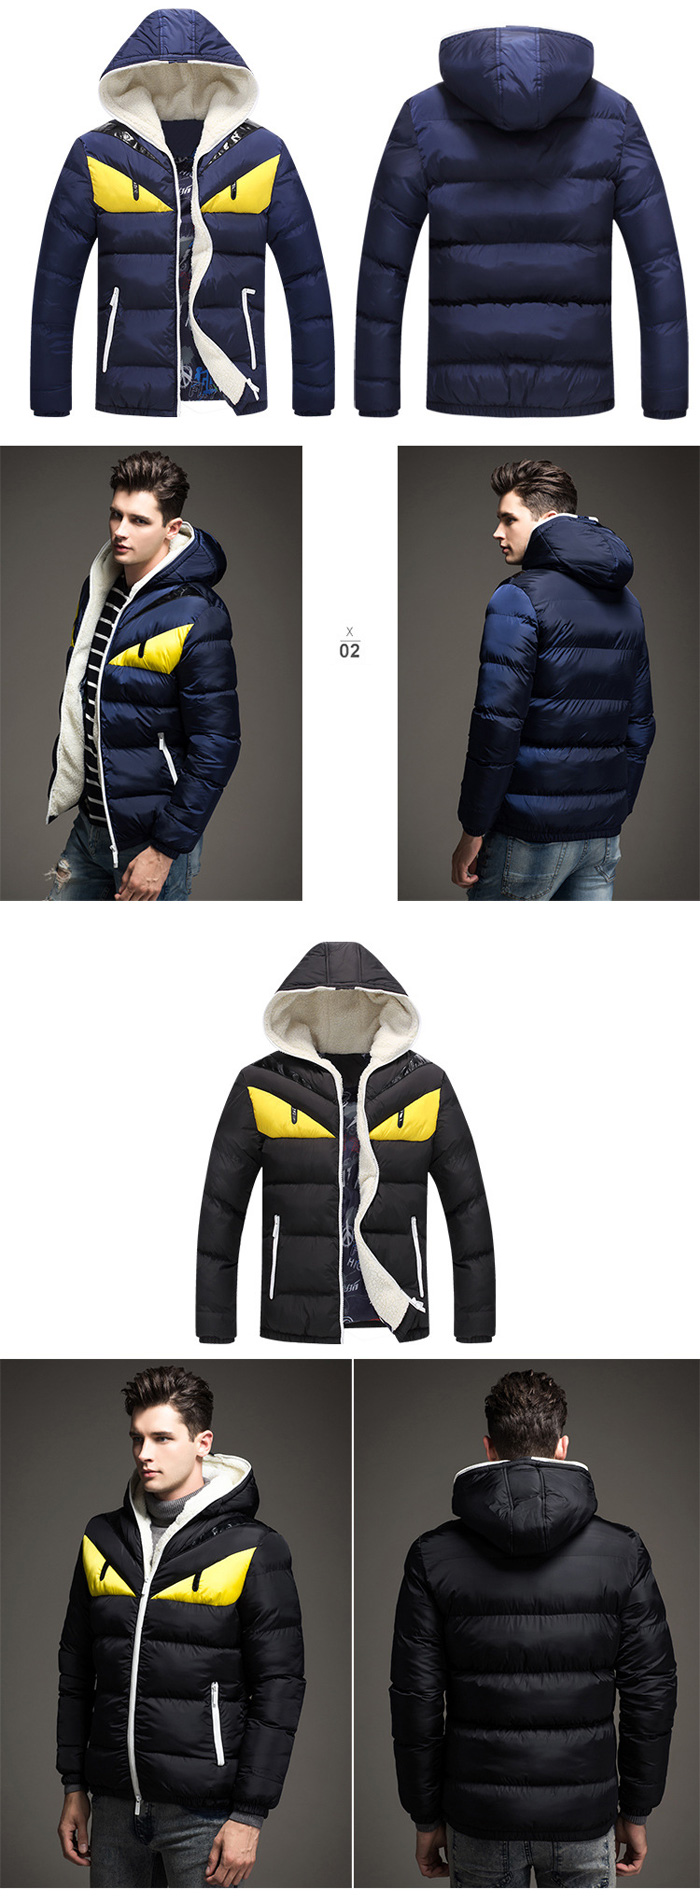 Men Color Block Angry Eye Hooded Quilted Jacket Warm Winter Coat